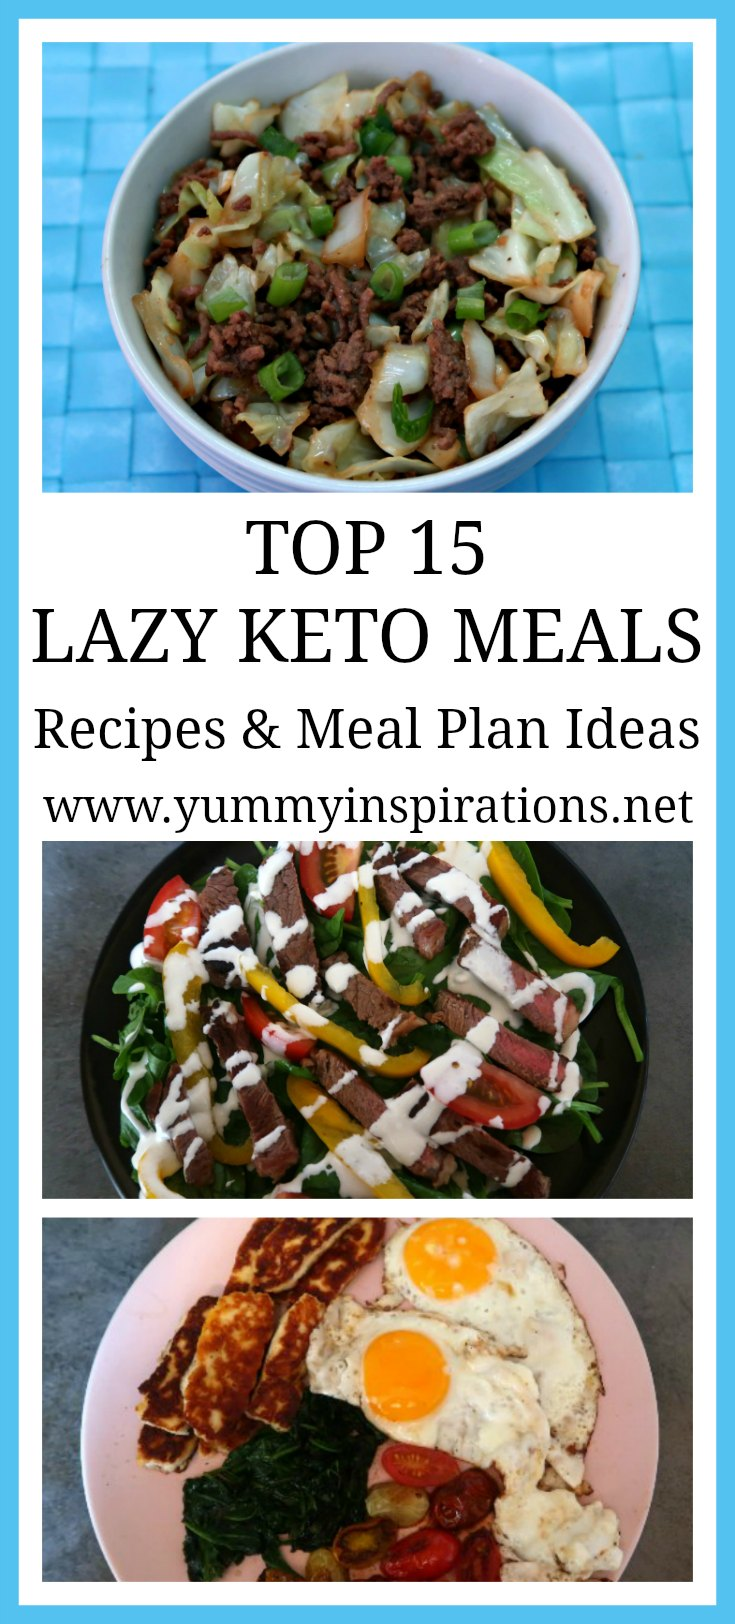 Top 15 Lazy Keto Meals Easy Low Carb Amp Ketogenic Diet Recipes